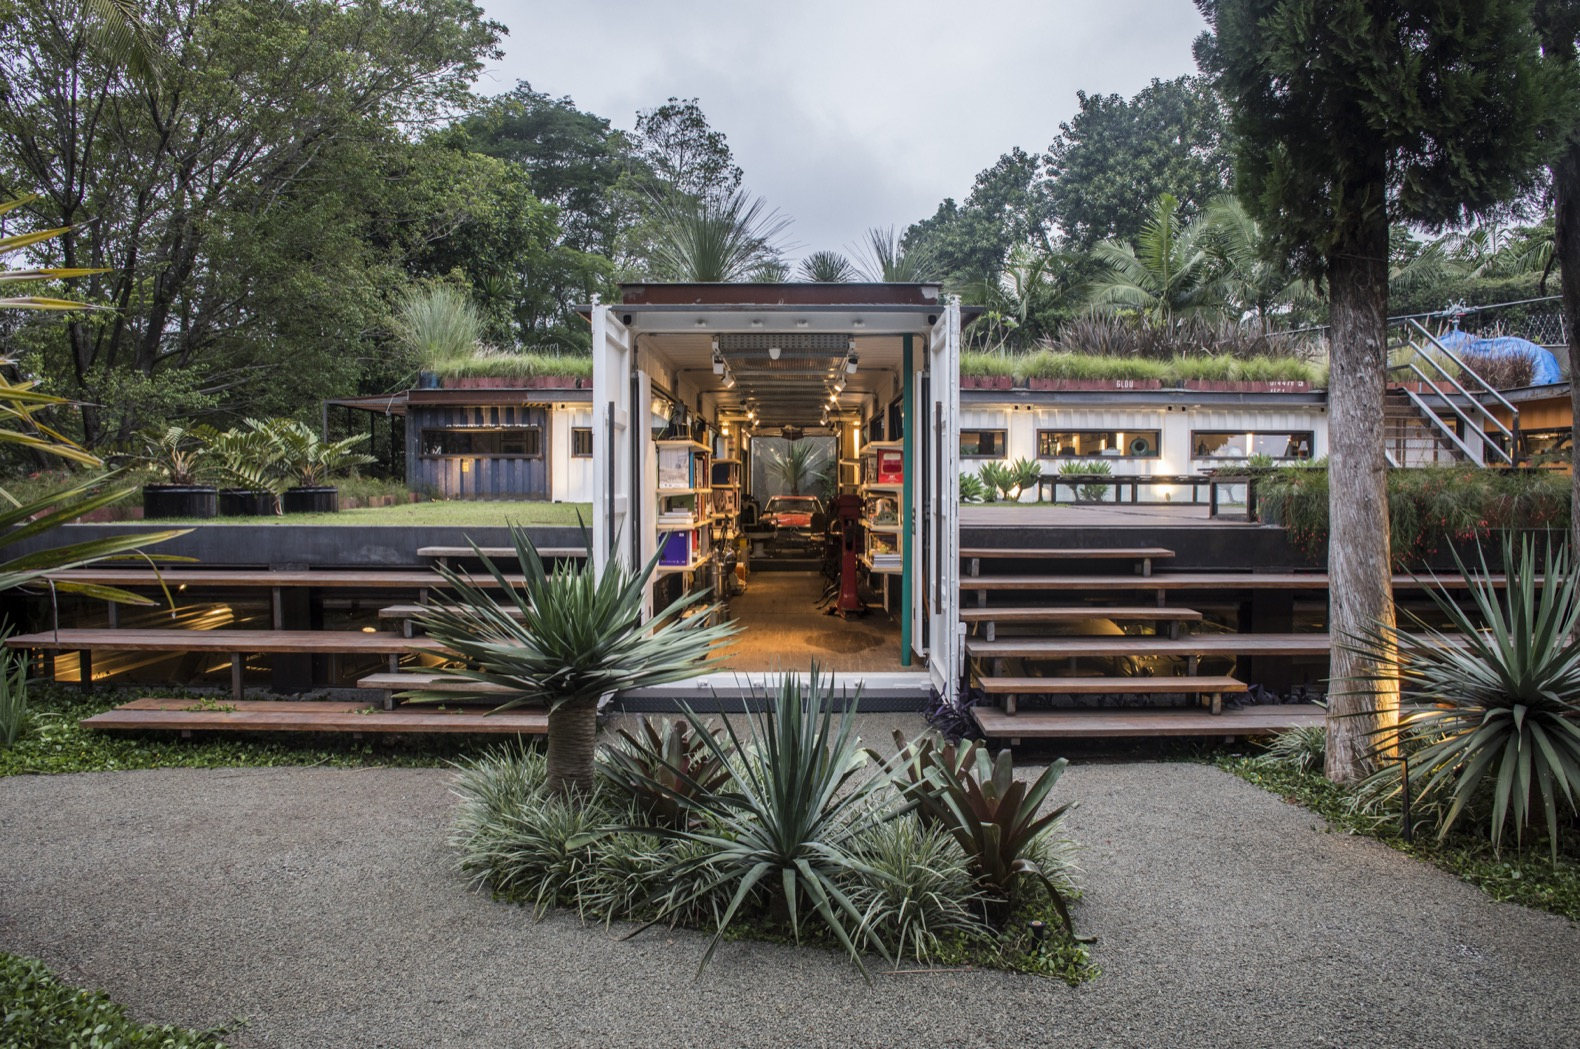 Shipping containers become a spectacular plant-covered gallery